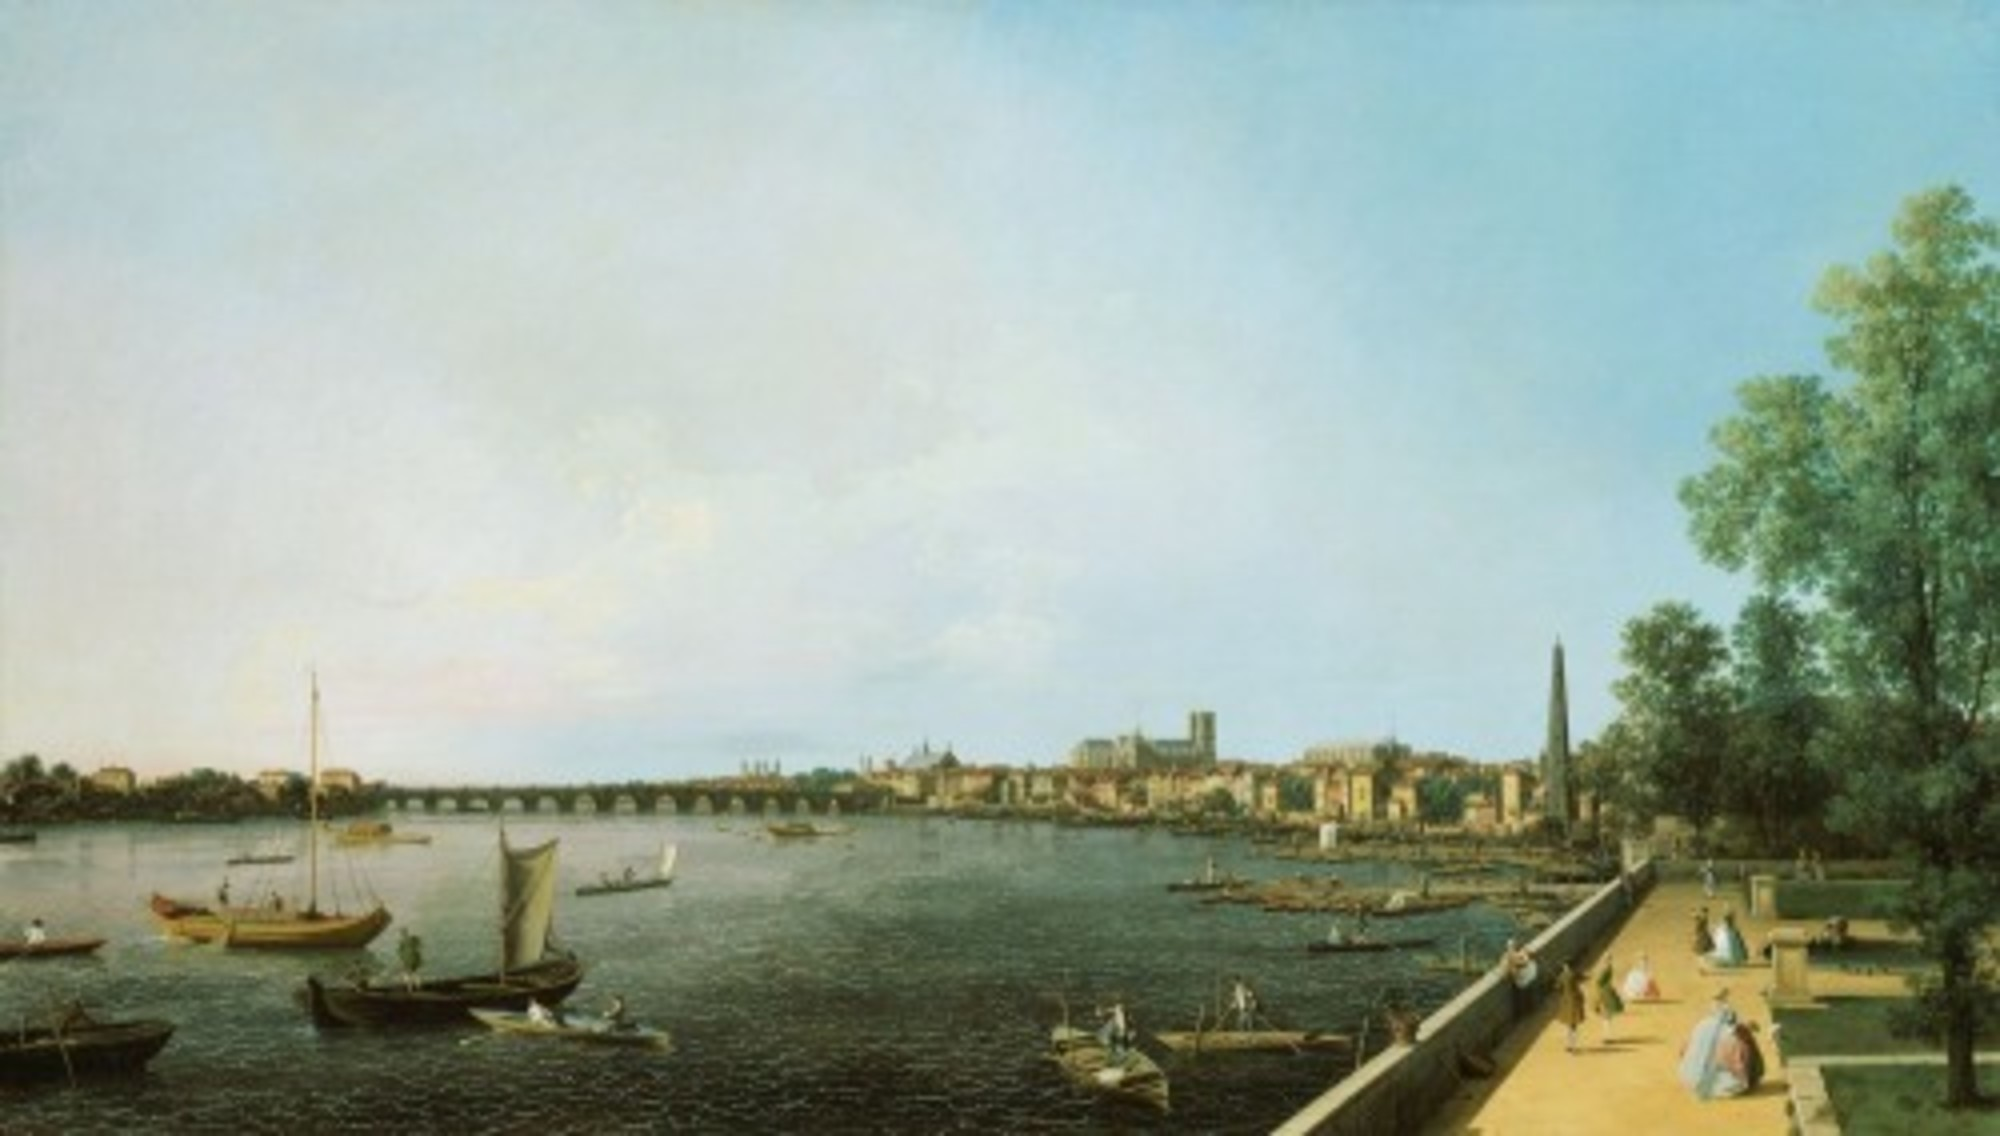 Canaletto---London-The-Thames-from-Somerset-House-Terrace-towards-Westminster.jpg